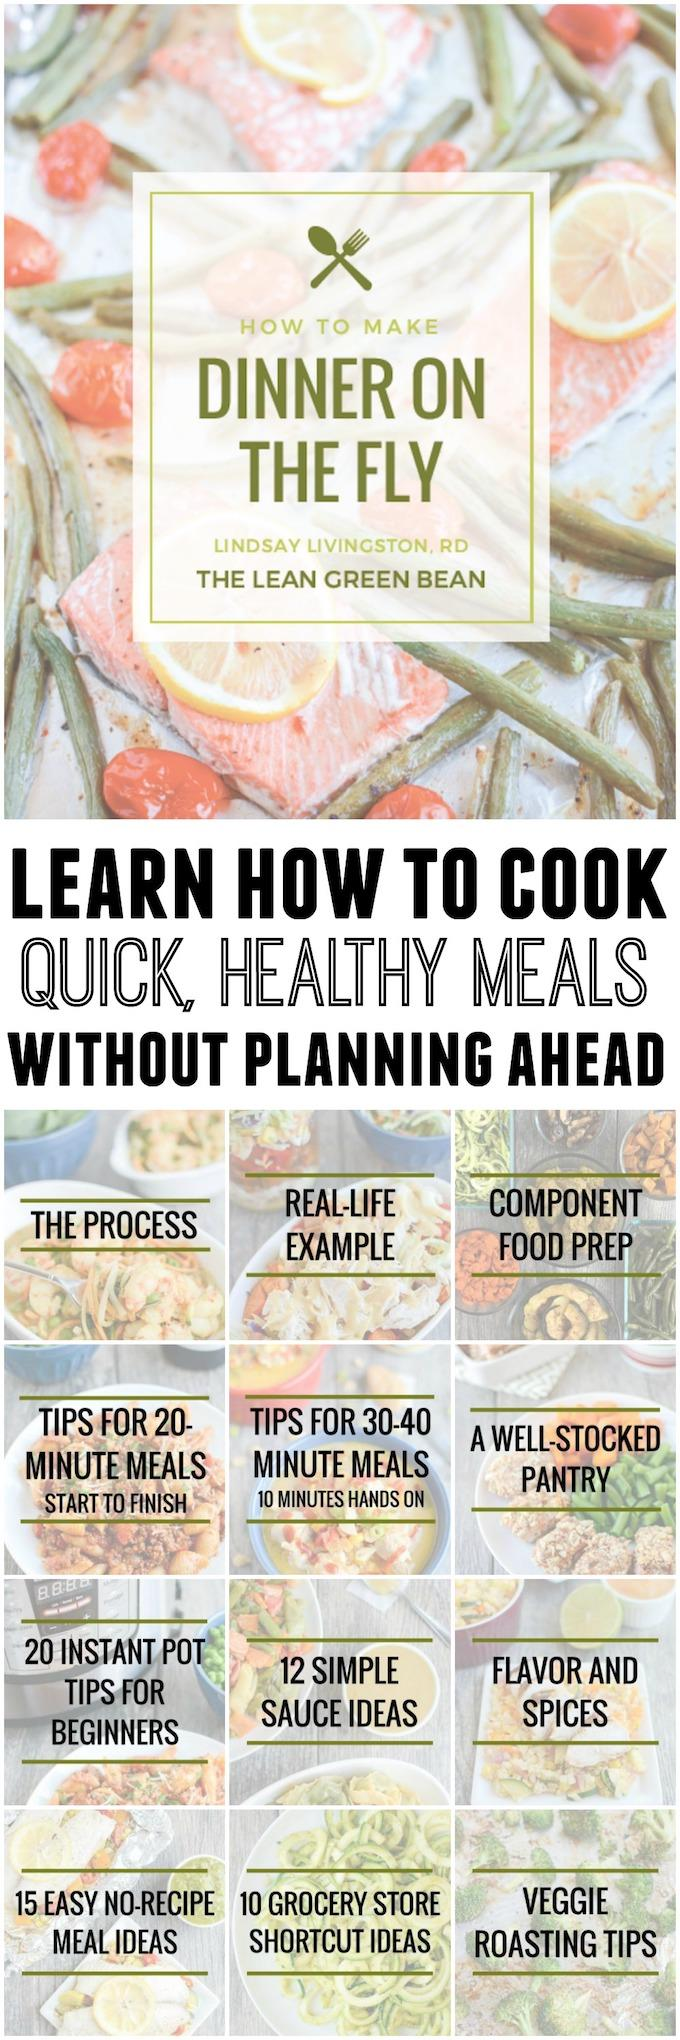 Ready to learn how to cook dinner on the fly? In this ebook, a Registered Dietitian and mom of two will teach you a simple 4-step process to put together quick, healthy dinners with very little prior planning.